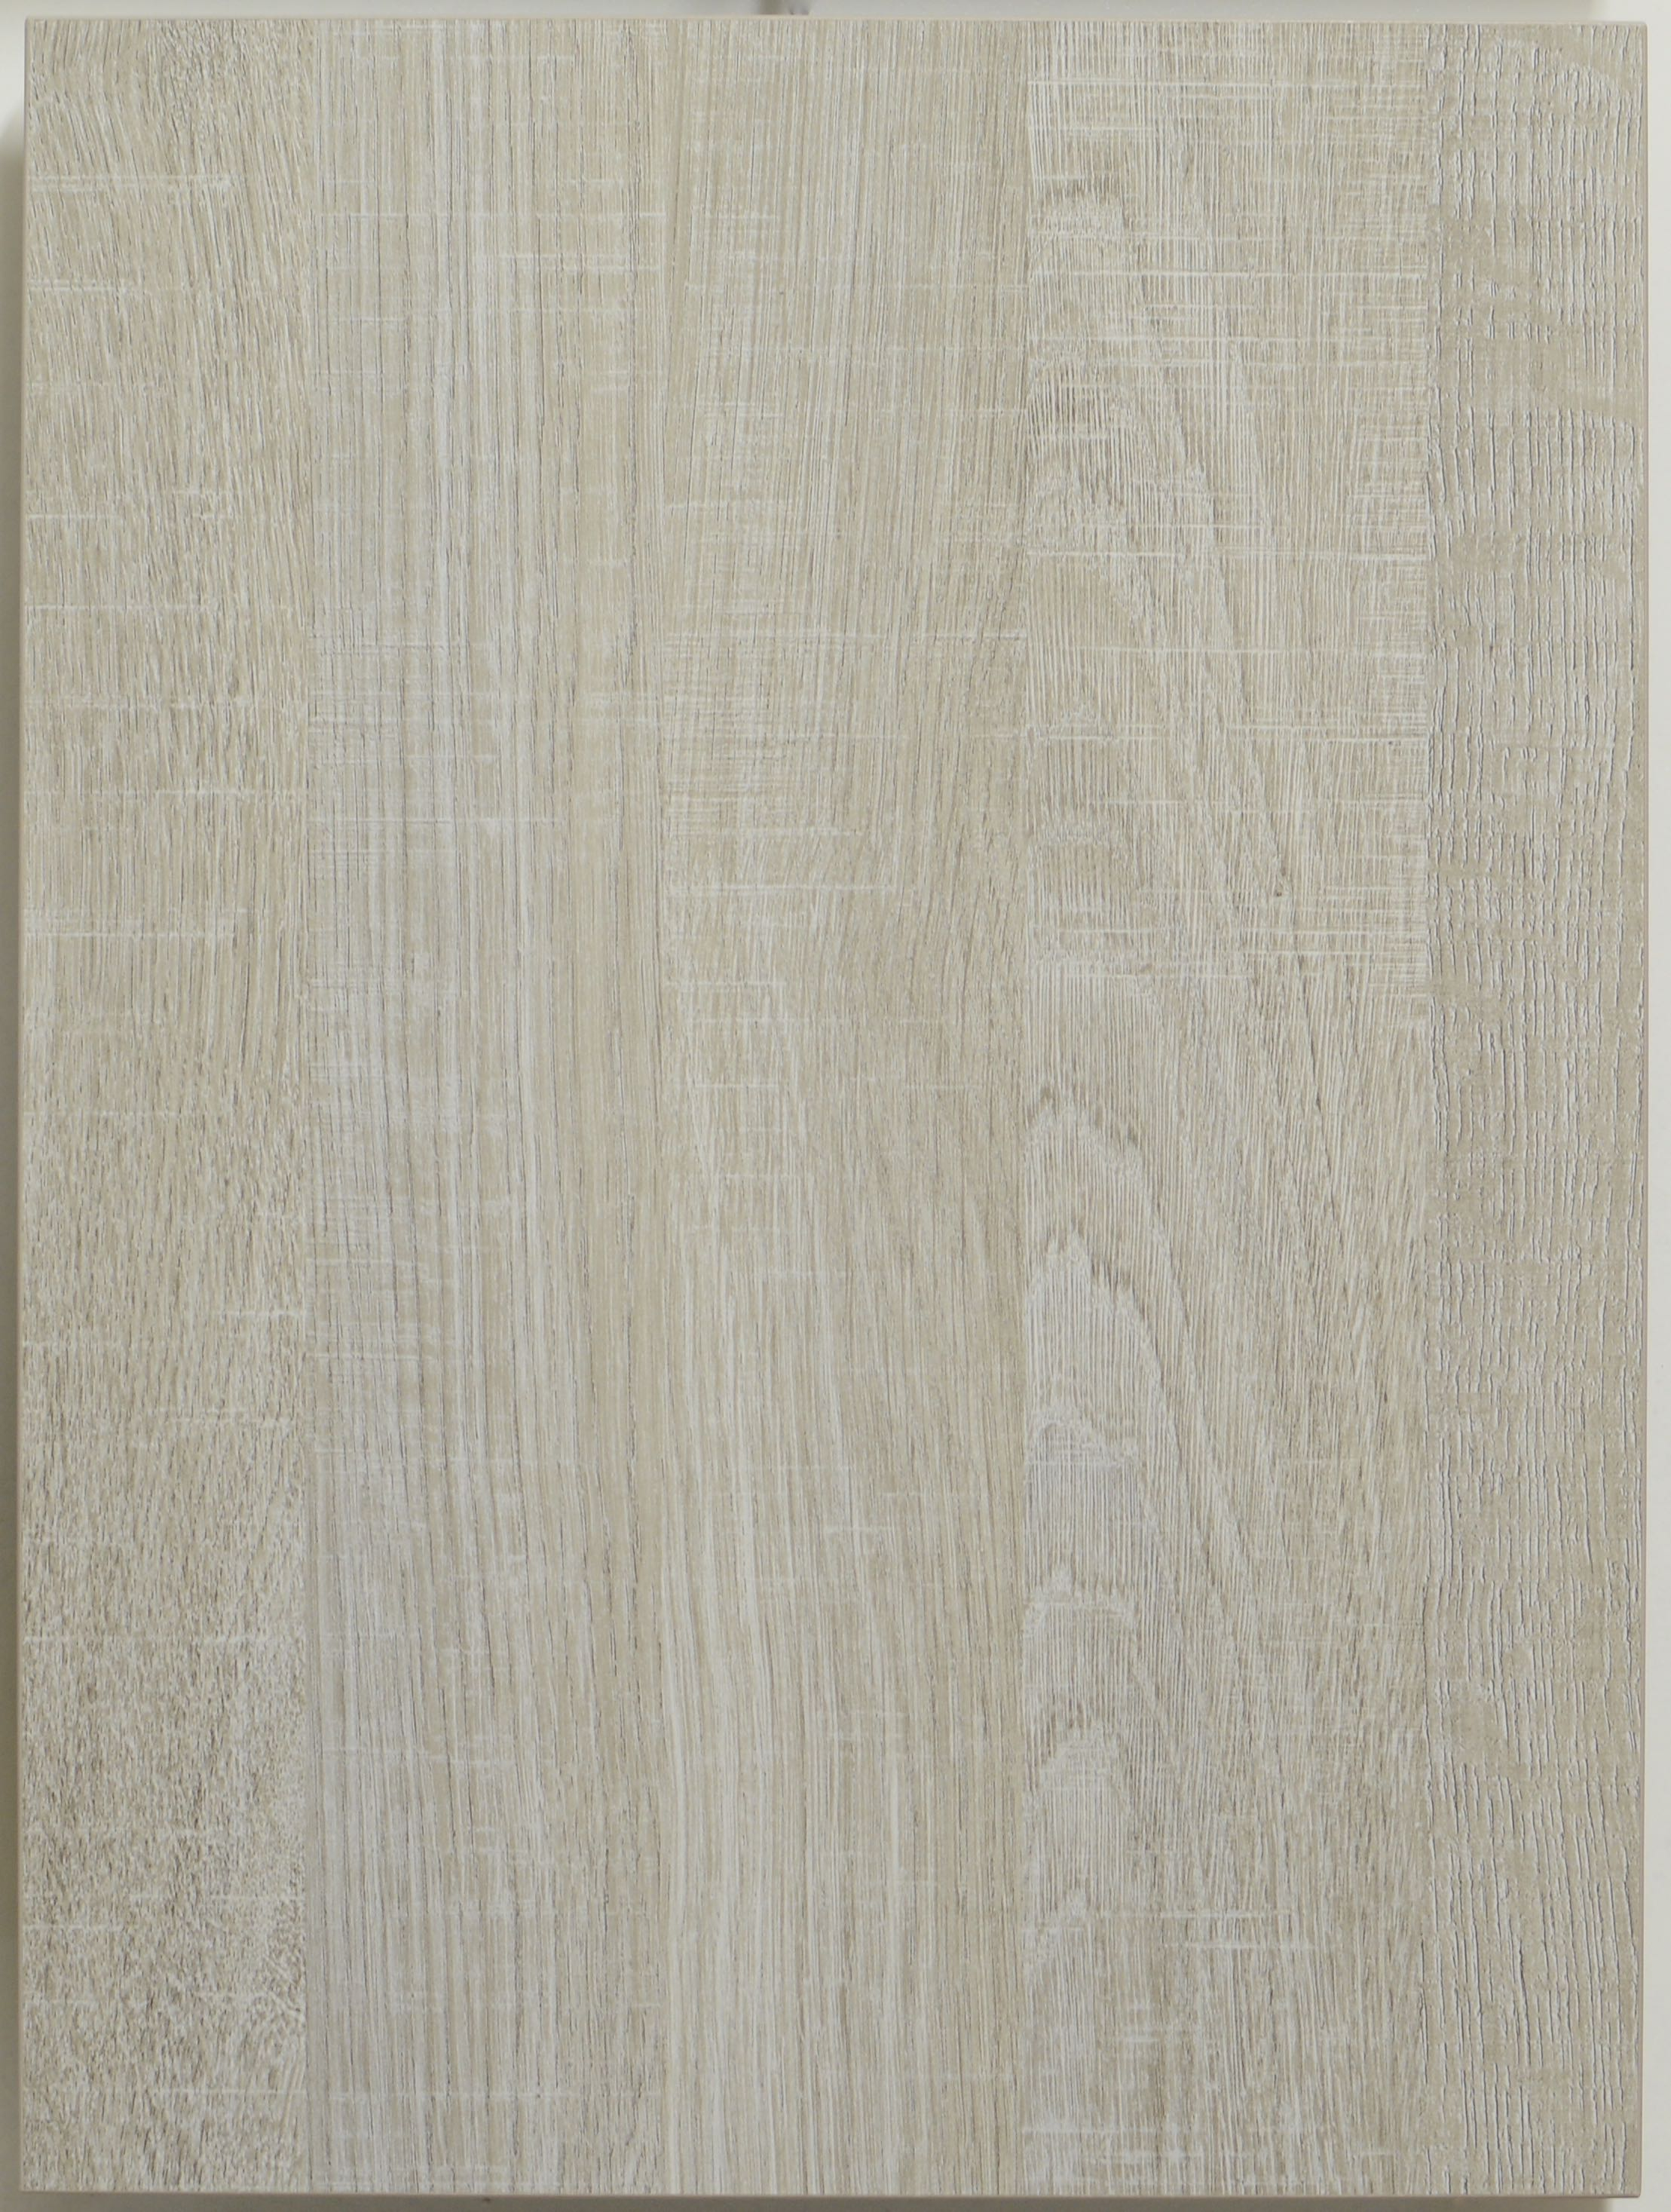 Kitchen cabinet doors barrie - A High Resolution Full Size Image Is